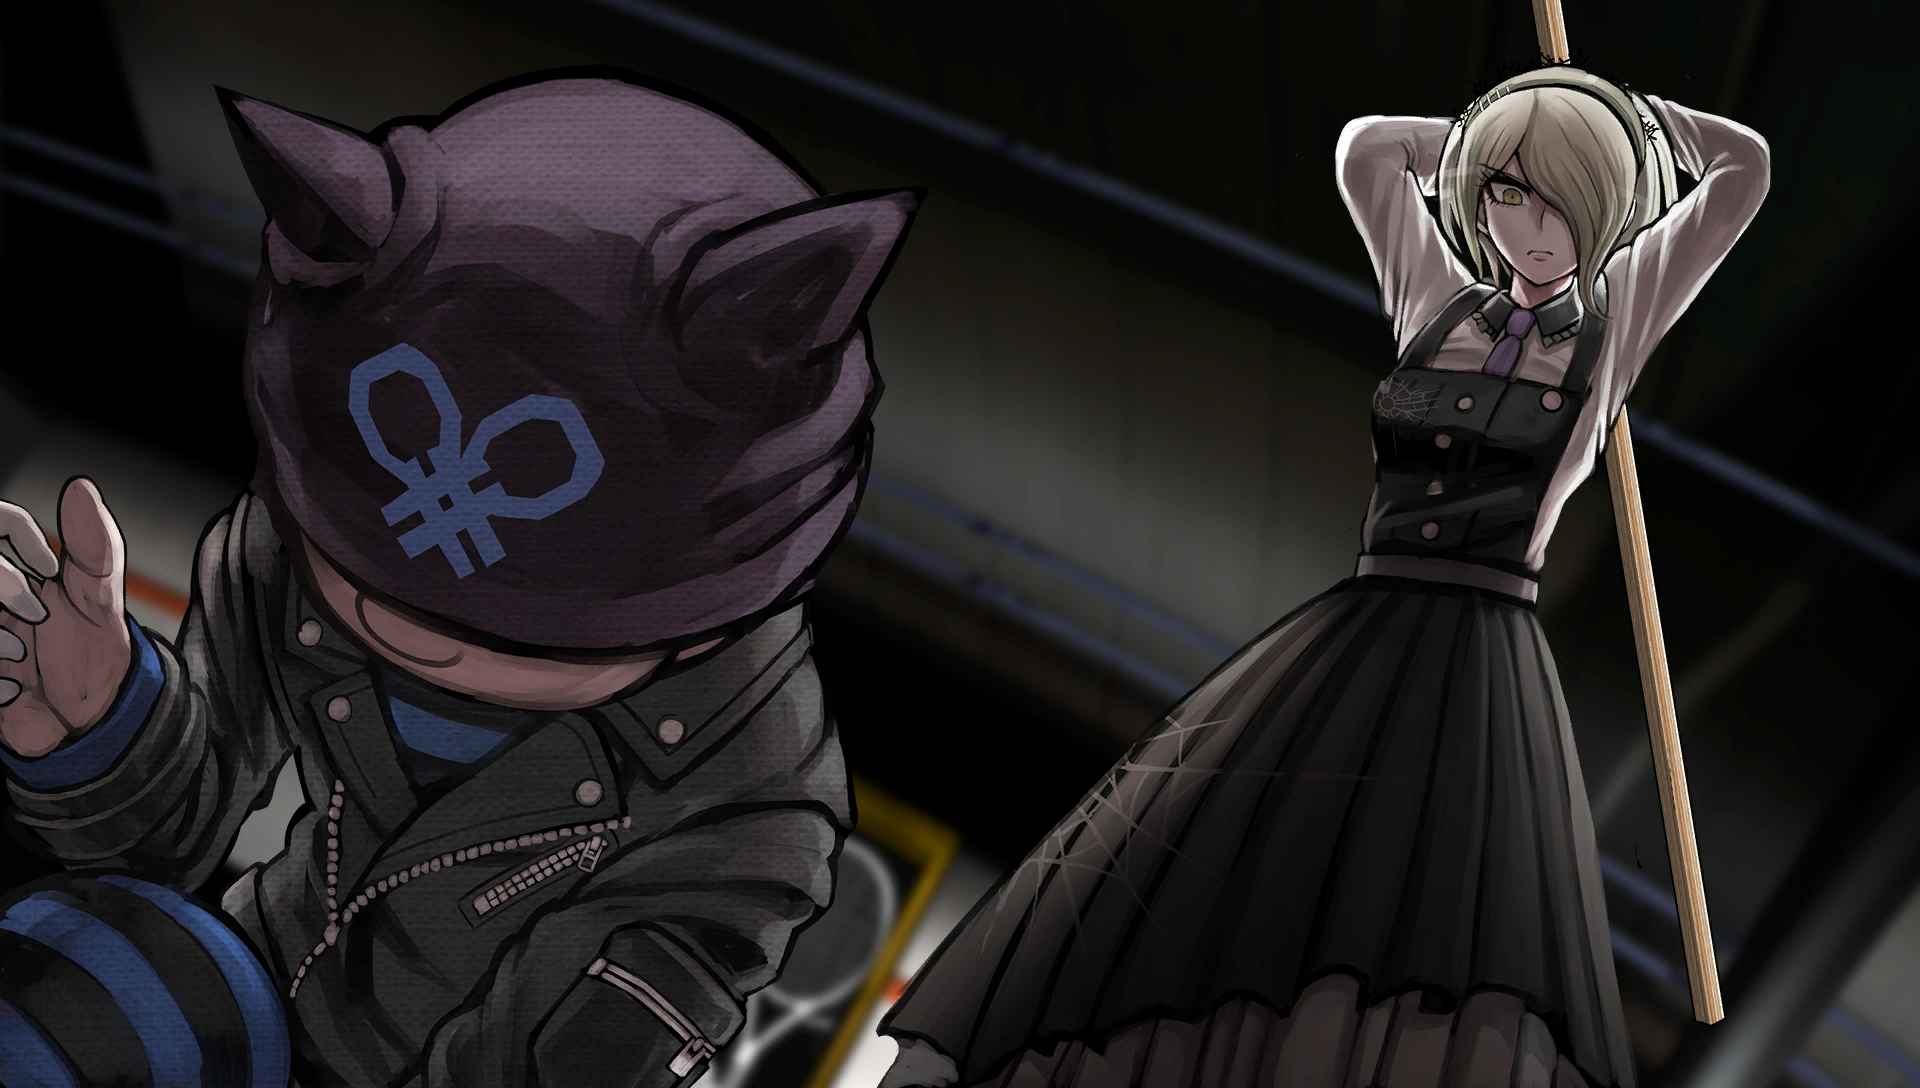 Ryoma Hoshi Danganronpa Wiki Fandom Ryoma's presence alone during danganronpa v3's class trials makes it hard to determine who the even side characters like ryoma hoshi get their chance to shine and are often fleshed out through. ryoma hoshi danganronpa wiki fandom